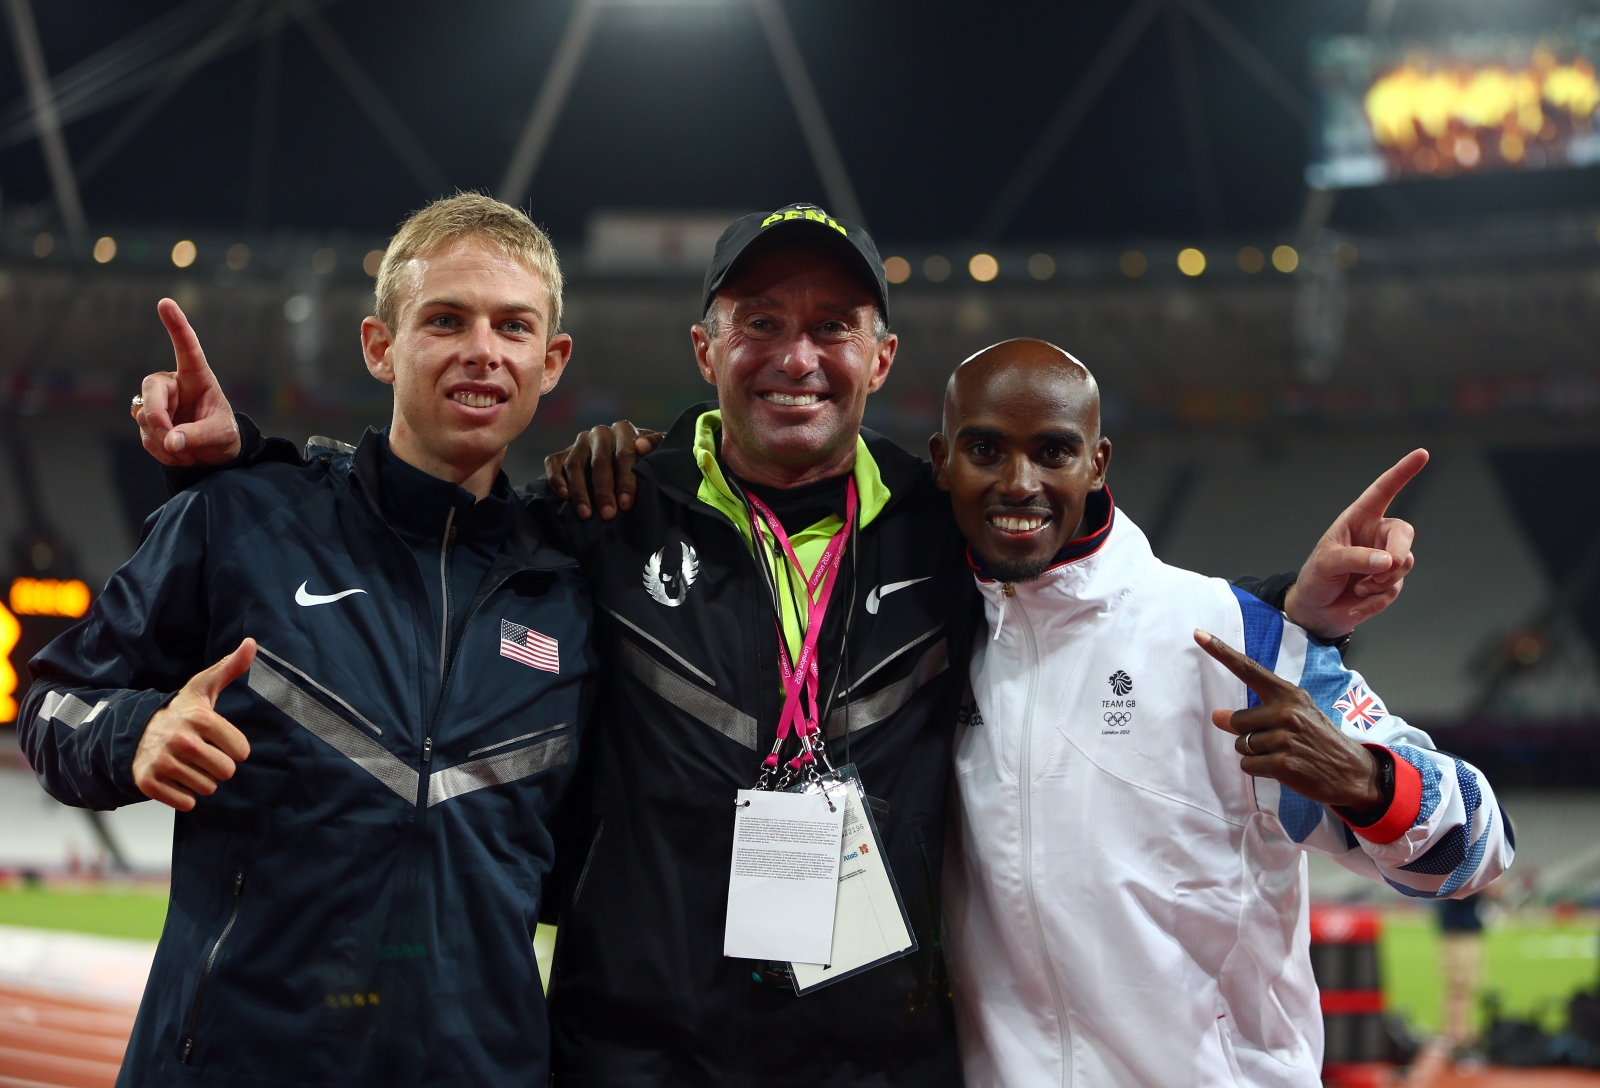 Alberto Salazar and Galen Rupp